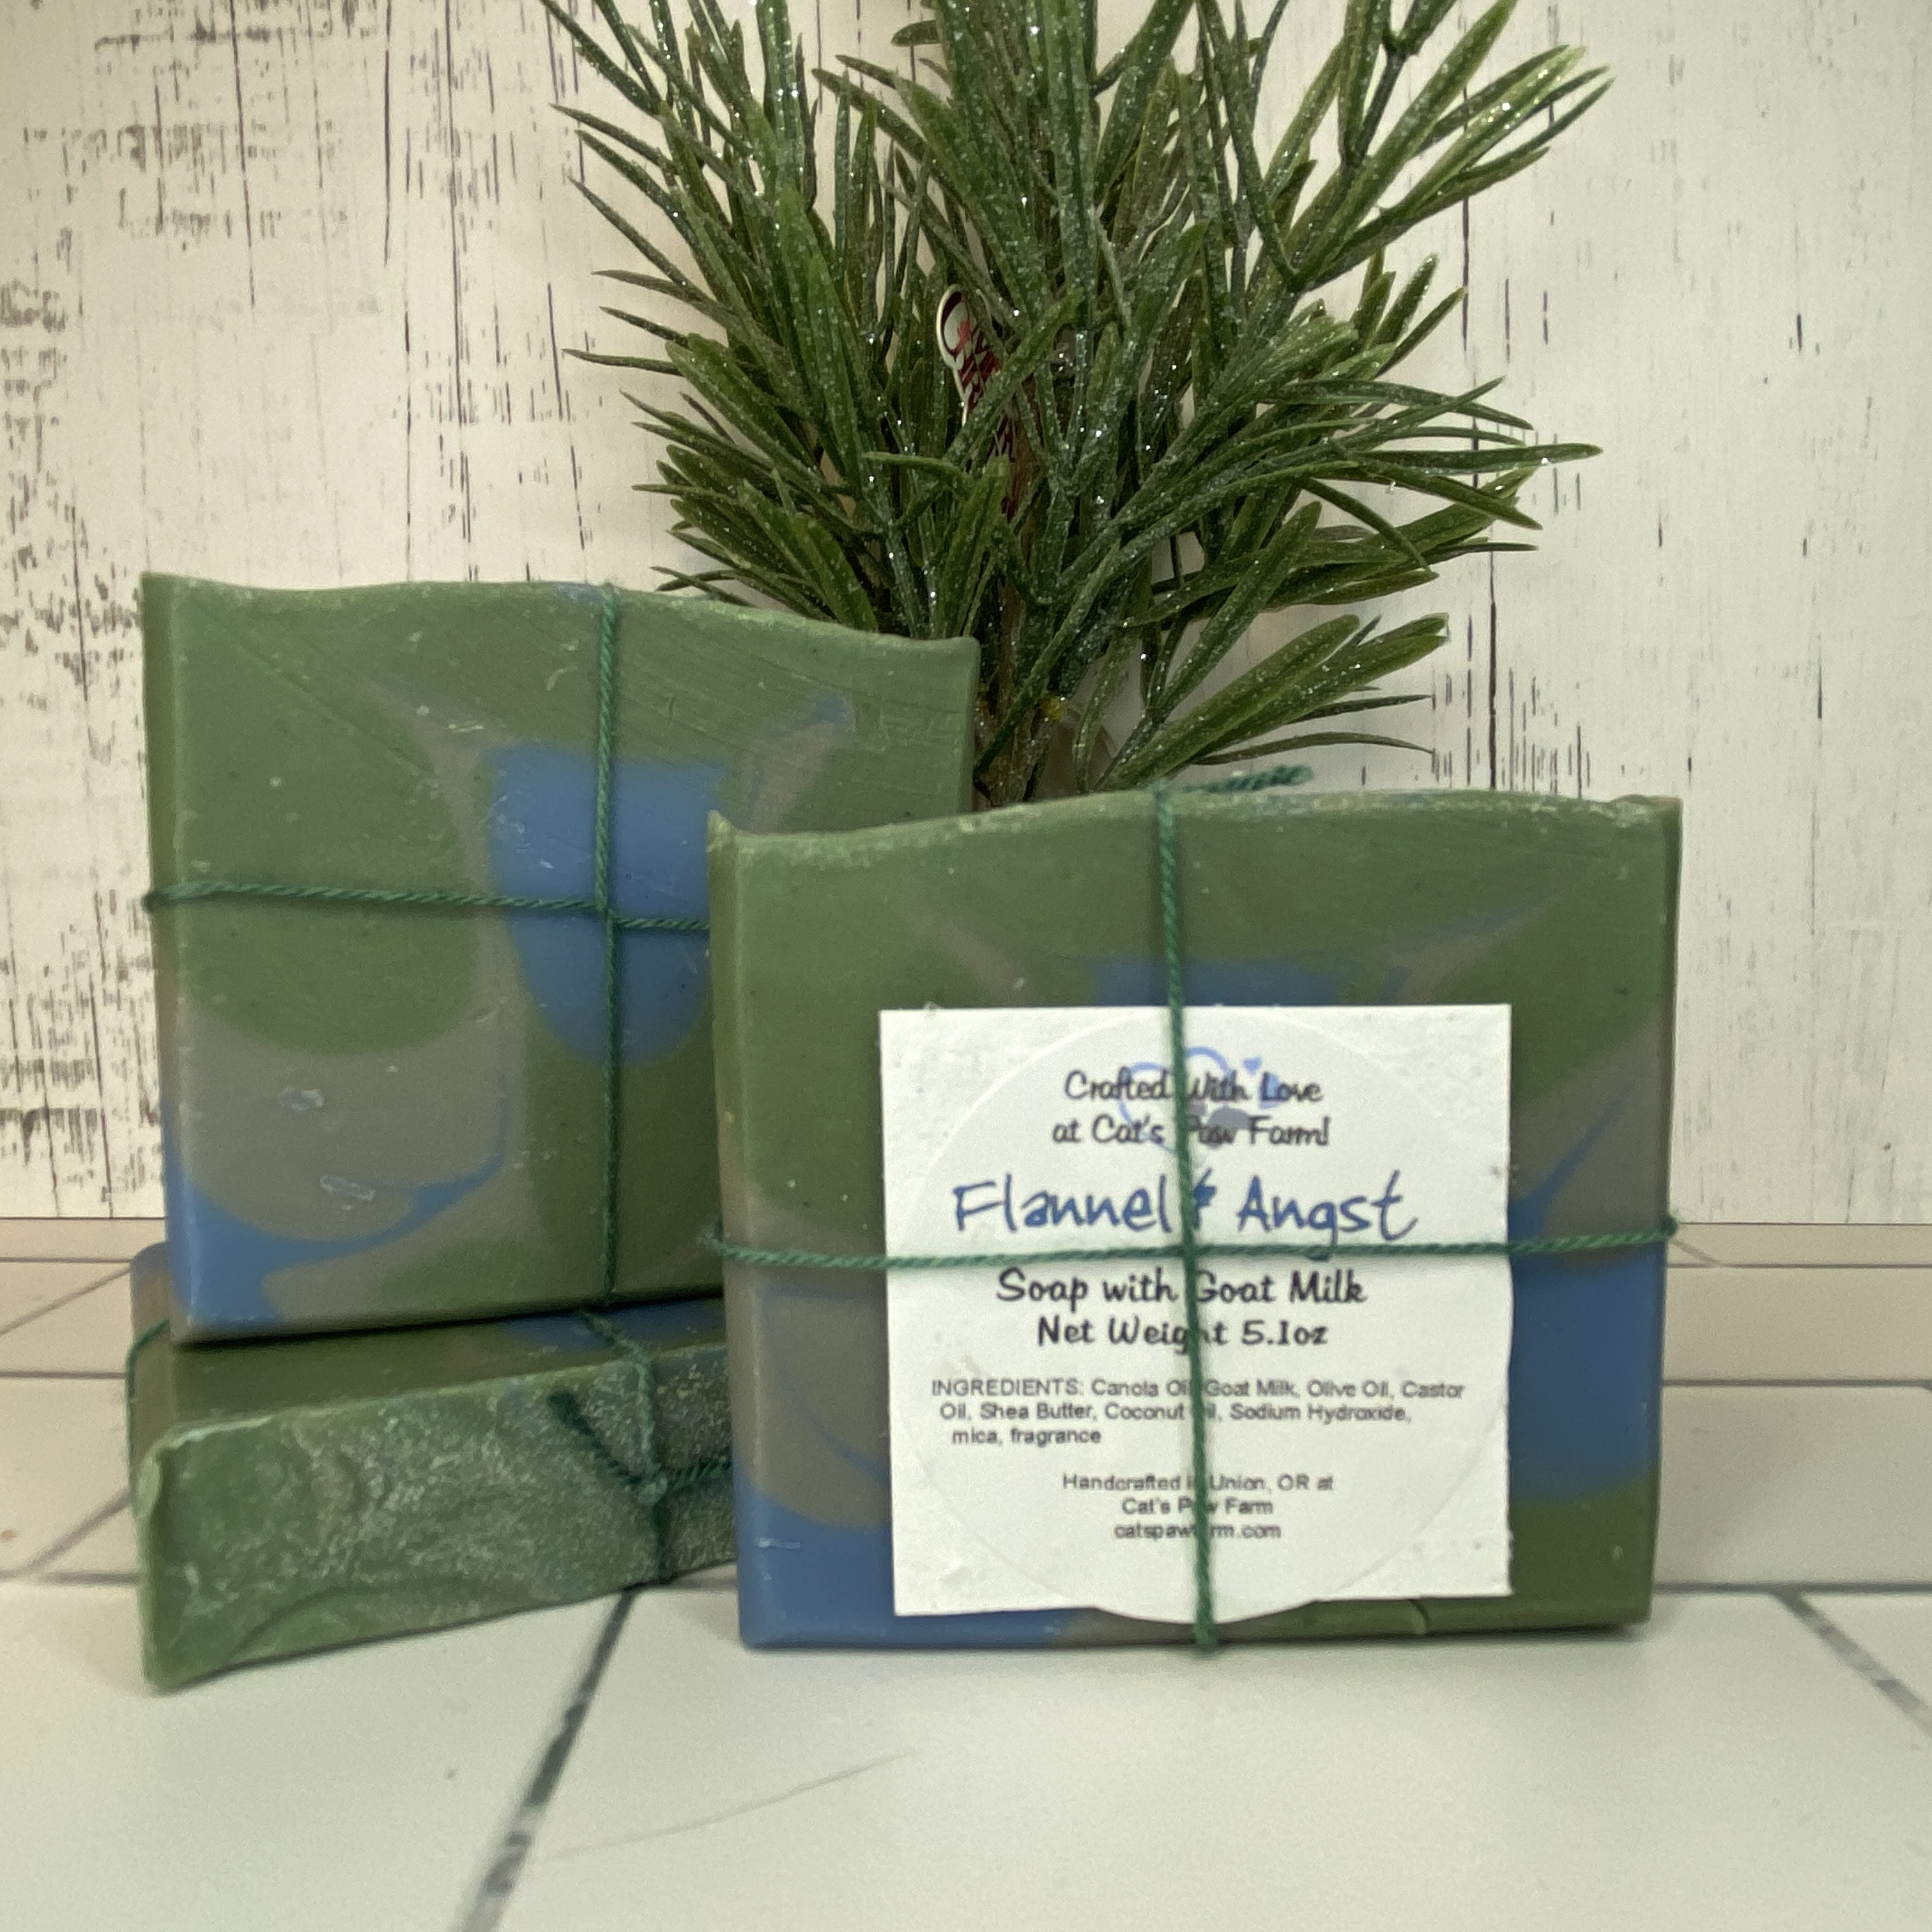 Flannel & Angst Scented Soap with Goat Milk